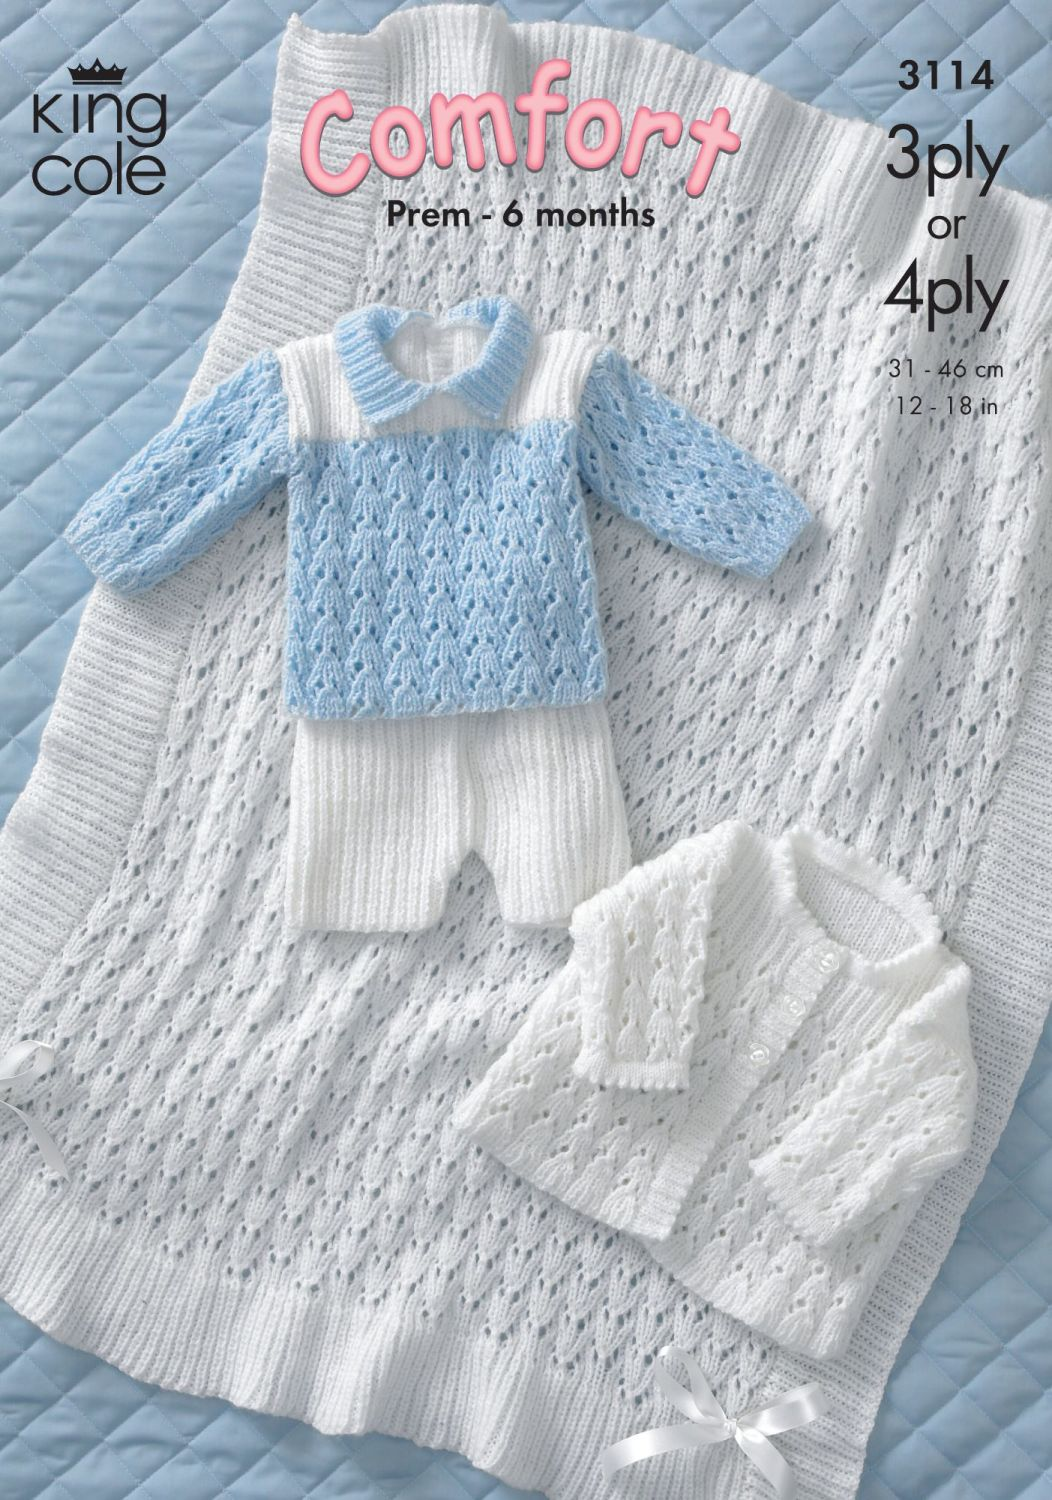 3114 Knitting Pattern - Babie's Comfort 3ply & 4ply